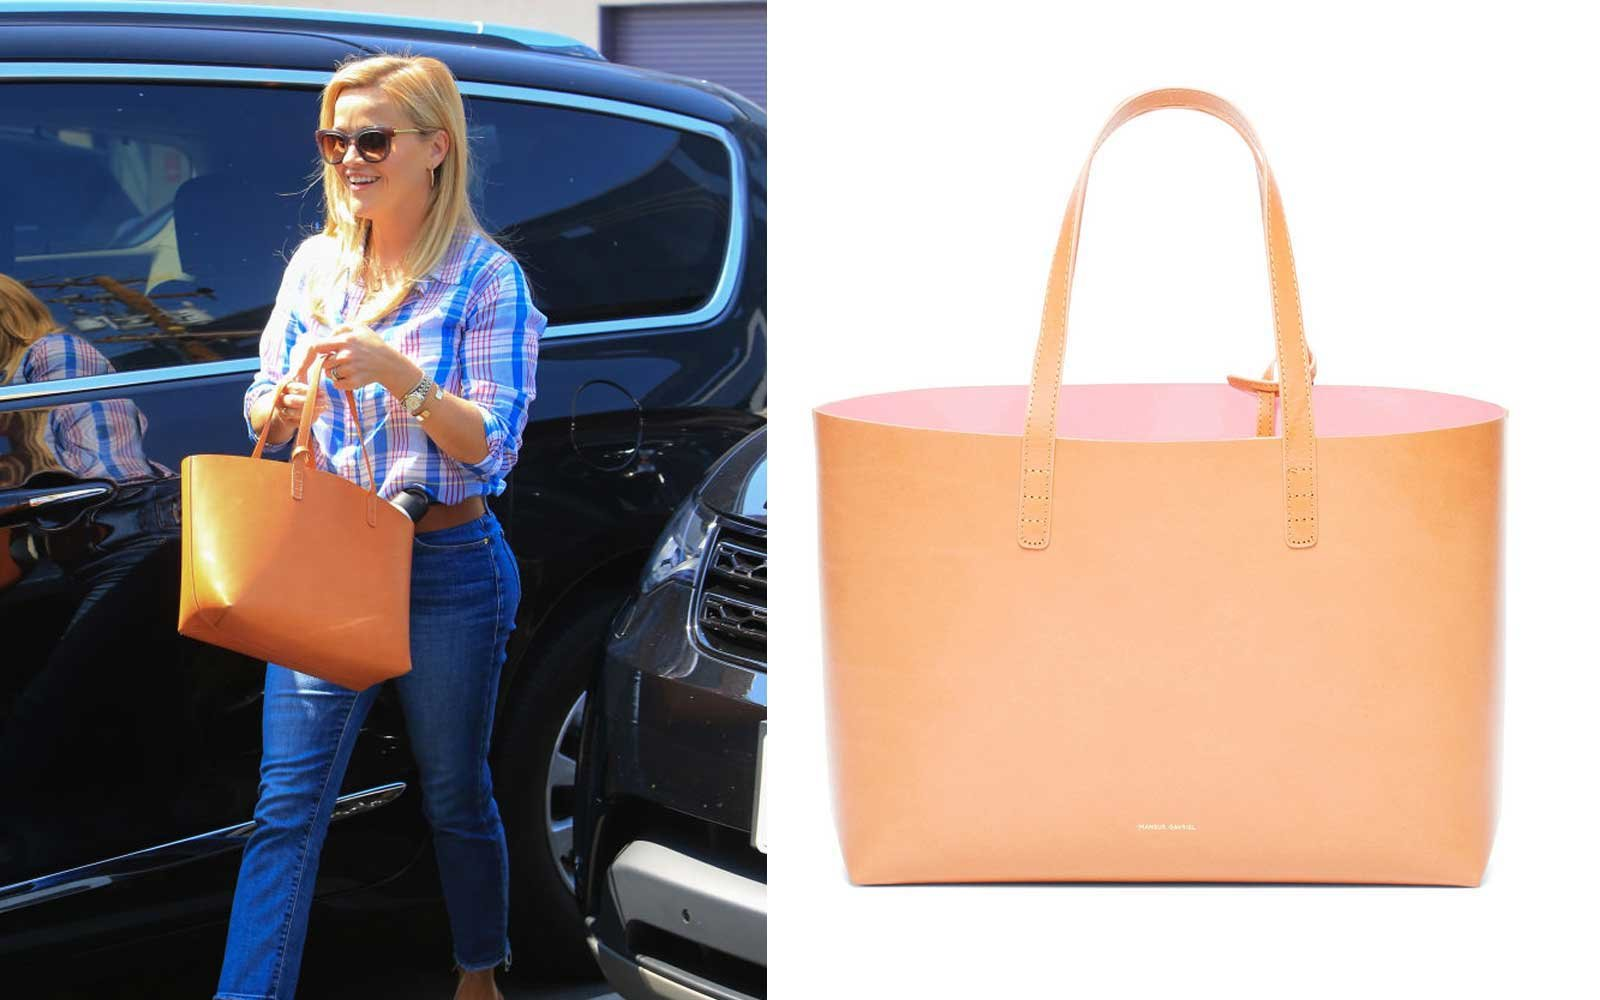 Reese Witherspoon carrying a Mansur Gavriel bag